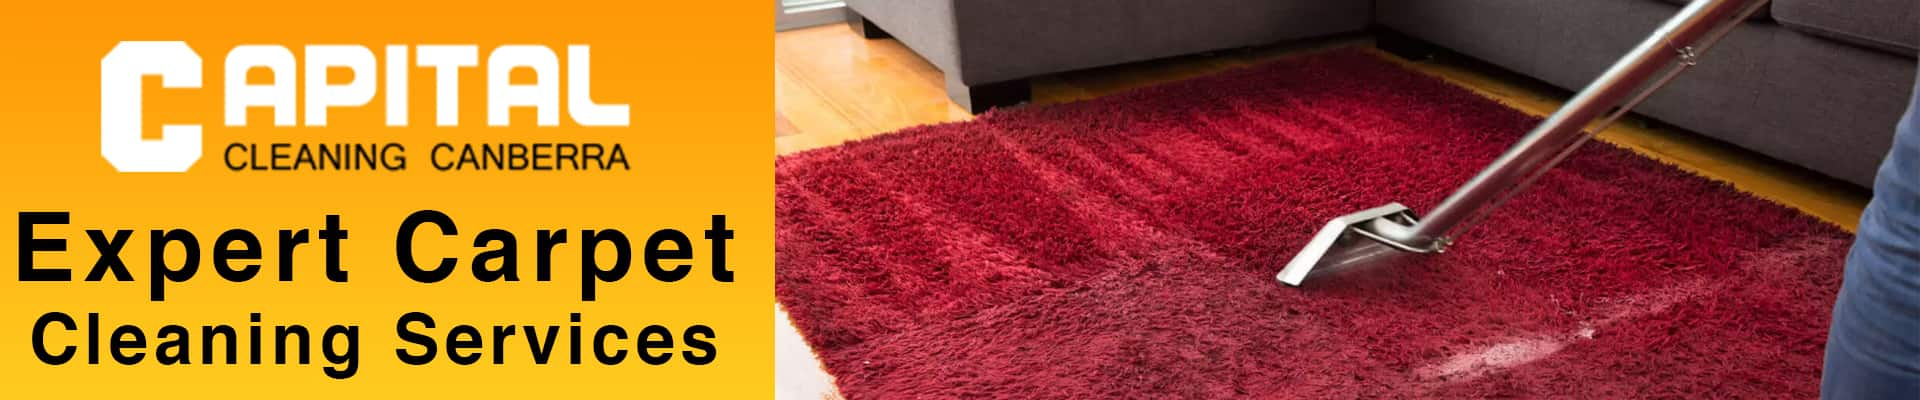 Expert Carpet Cleaning Services Kingston